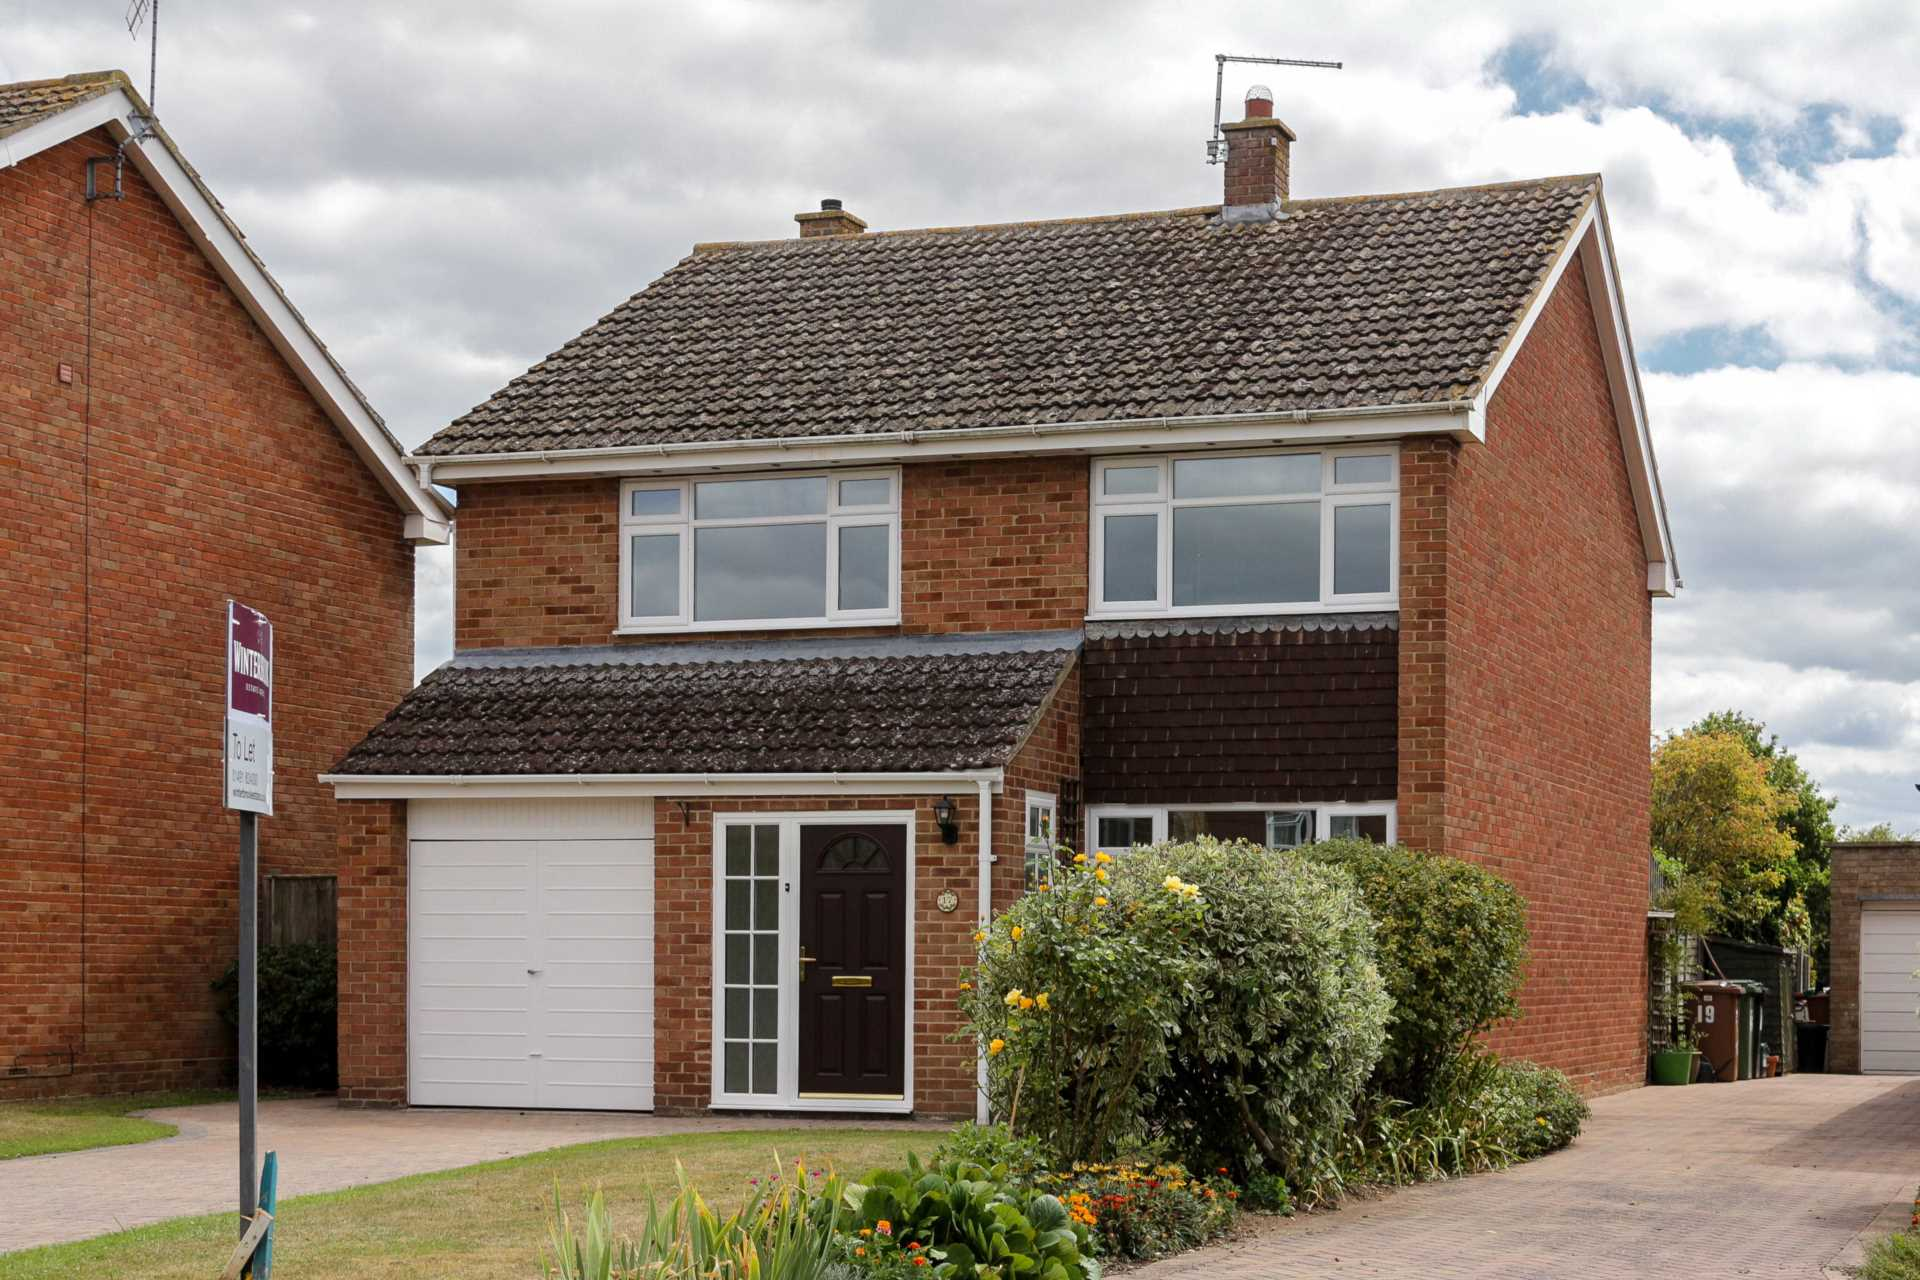 Greenfield Crescent, Wallingford, Image 1